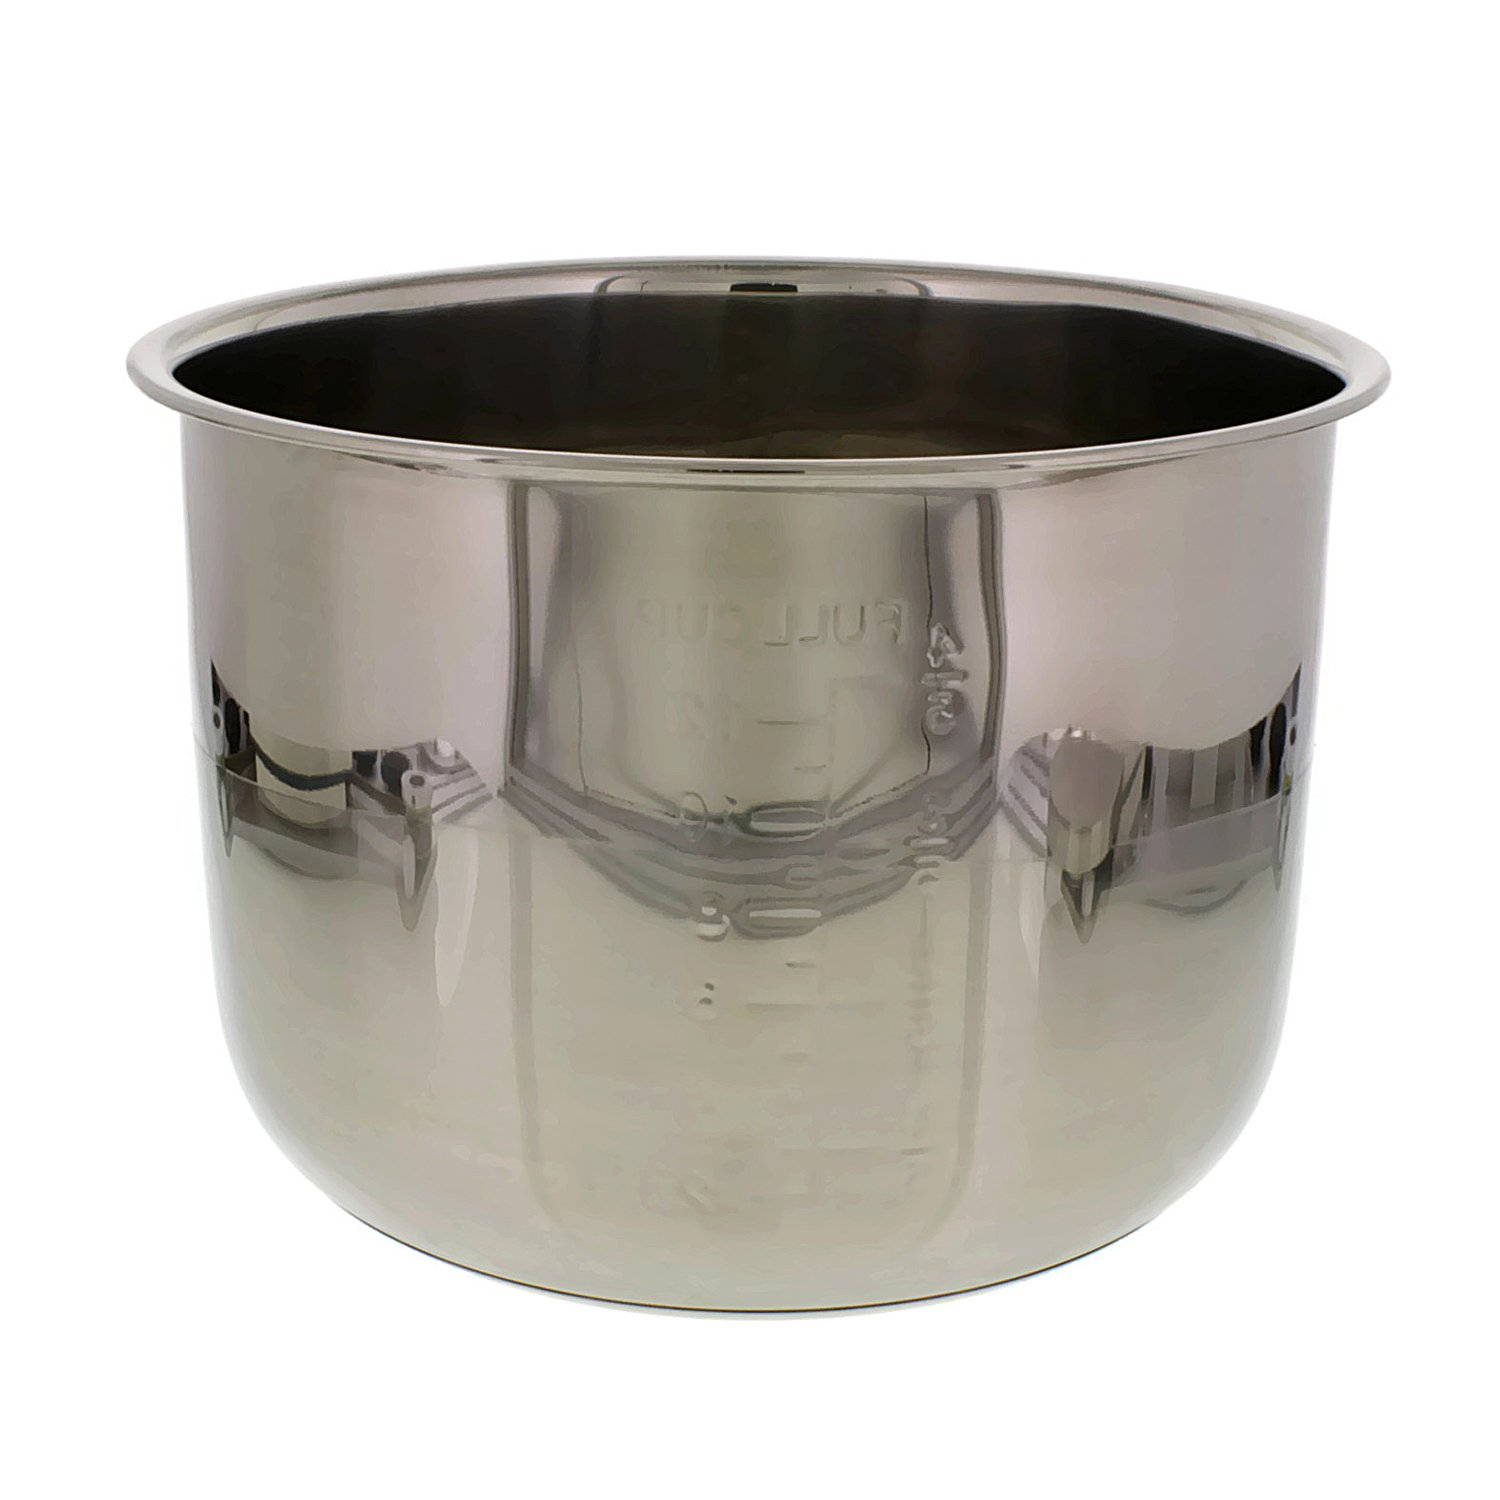 Cheftor 6QT Stainless Steel Removable Electric Pressure Cooker Cooking Pot Insert